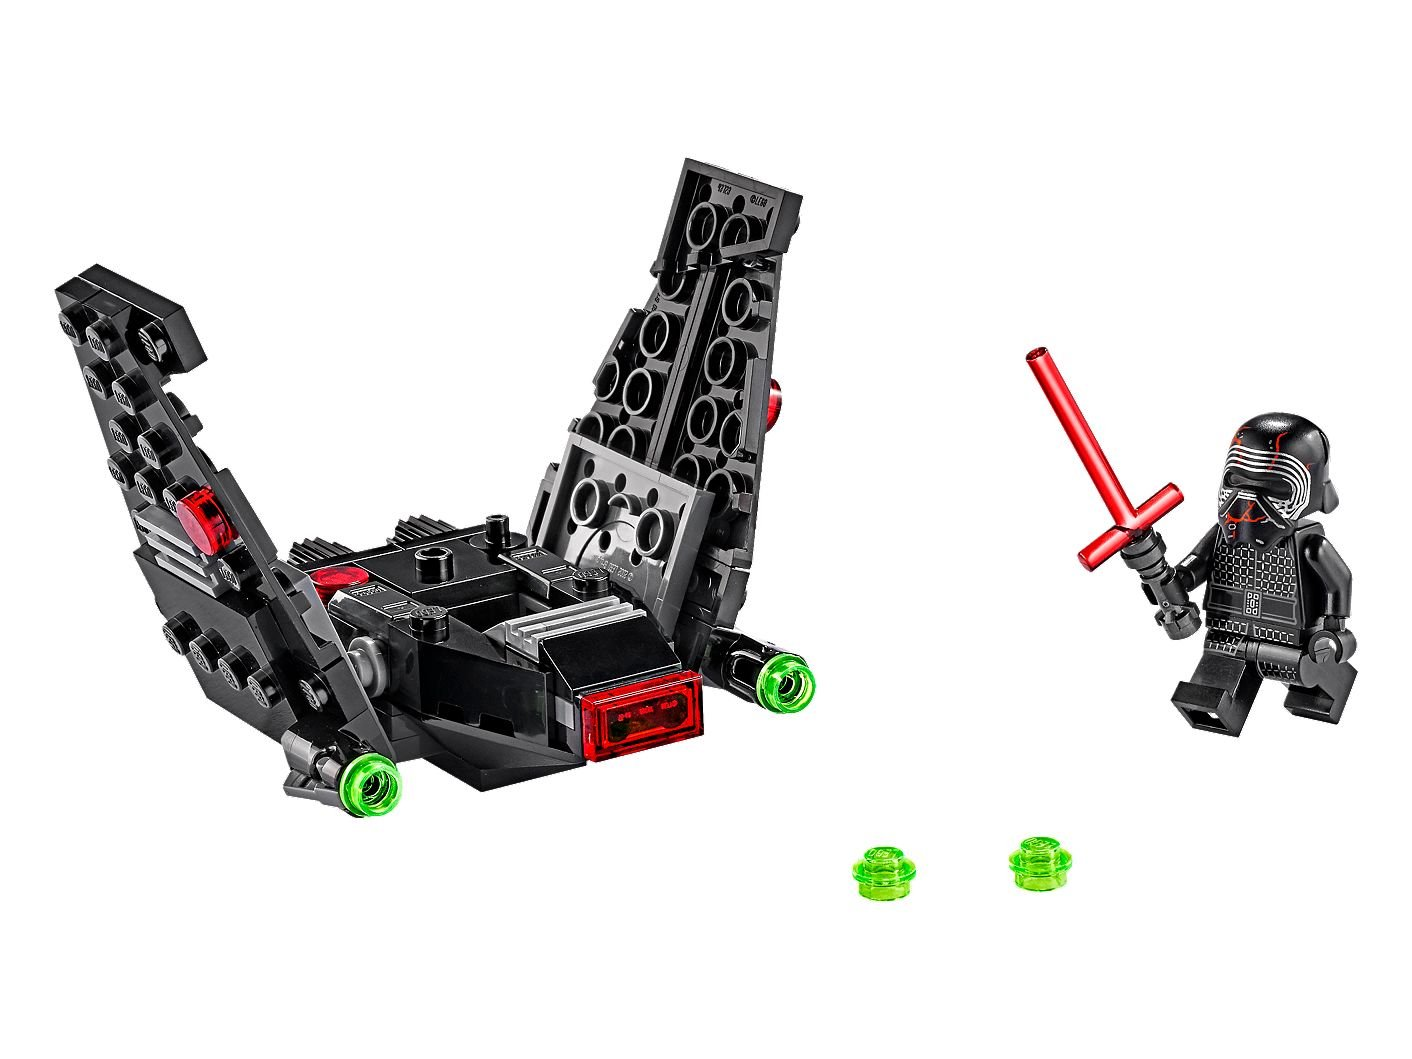 LEGO - Kylo Rens Shuttle Microfighter (75264)